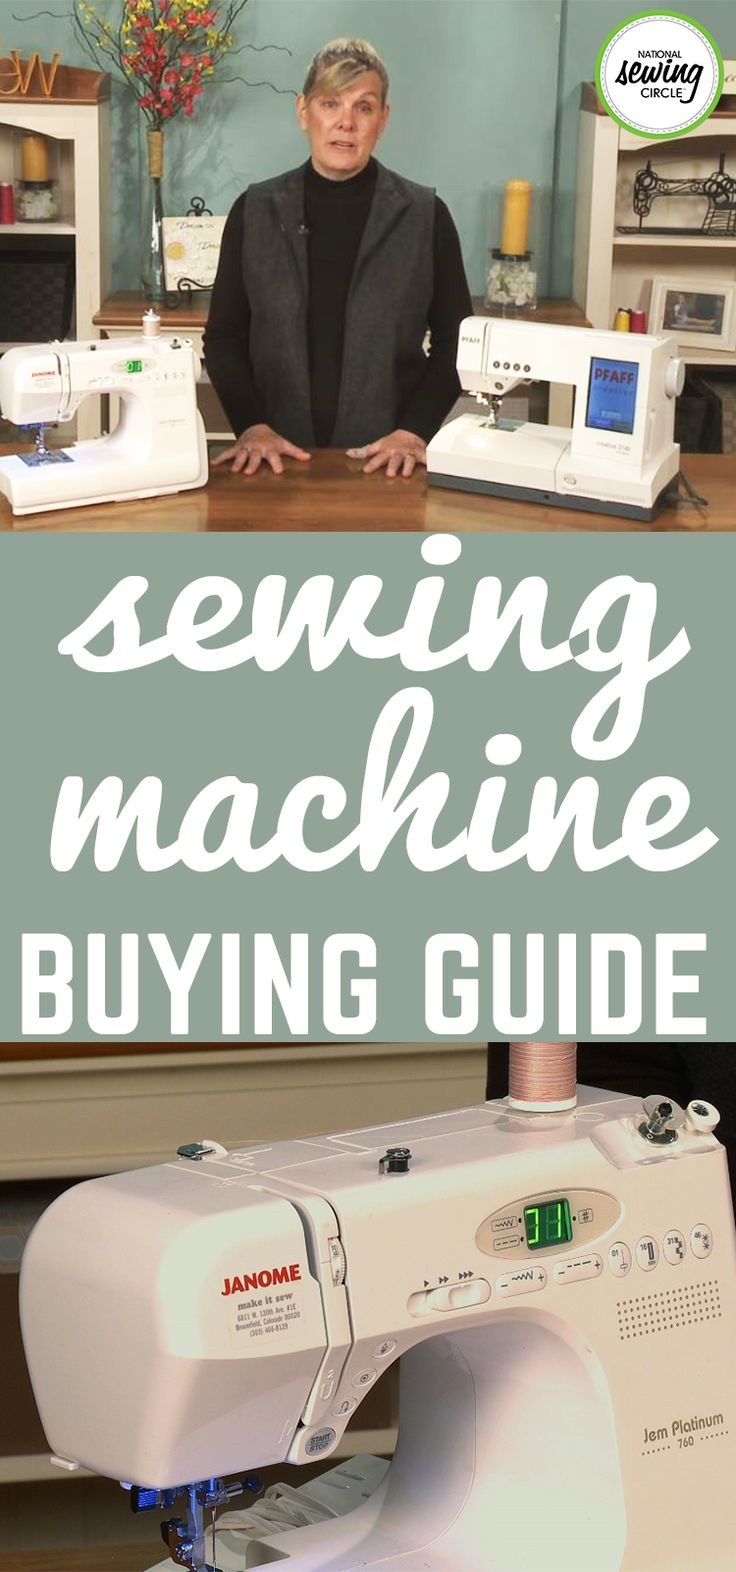 There are many different routes to take when it comes to deciding where to buy a sewing machine. ZJ Humbach takes you through many of these options and discusses the advantages and disadvantages of each option. Keep these helpful hints in mind next time you're looking for a new sewing machine!